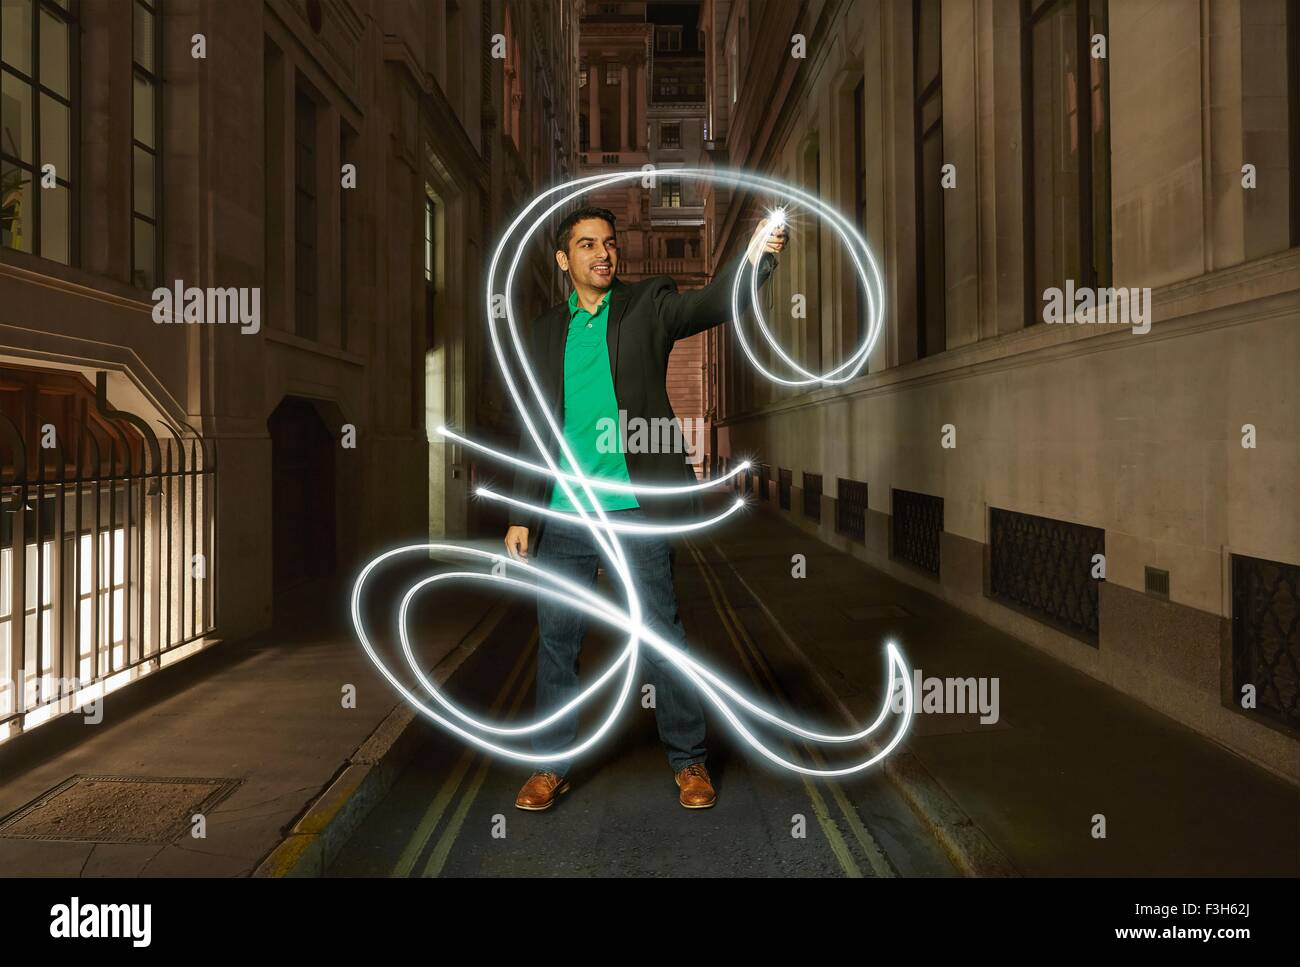 Businessman light painting glowing pound sign on city street at night - Stock Image